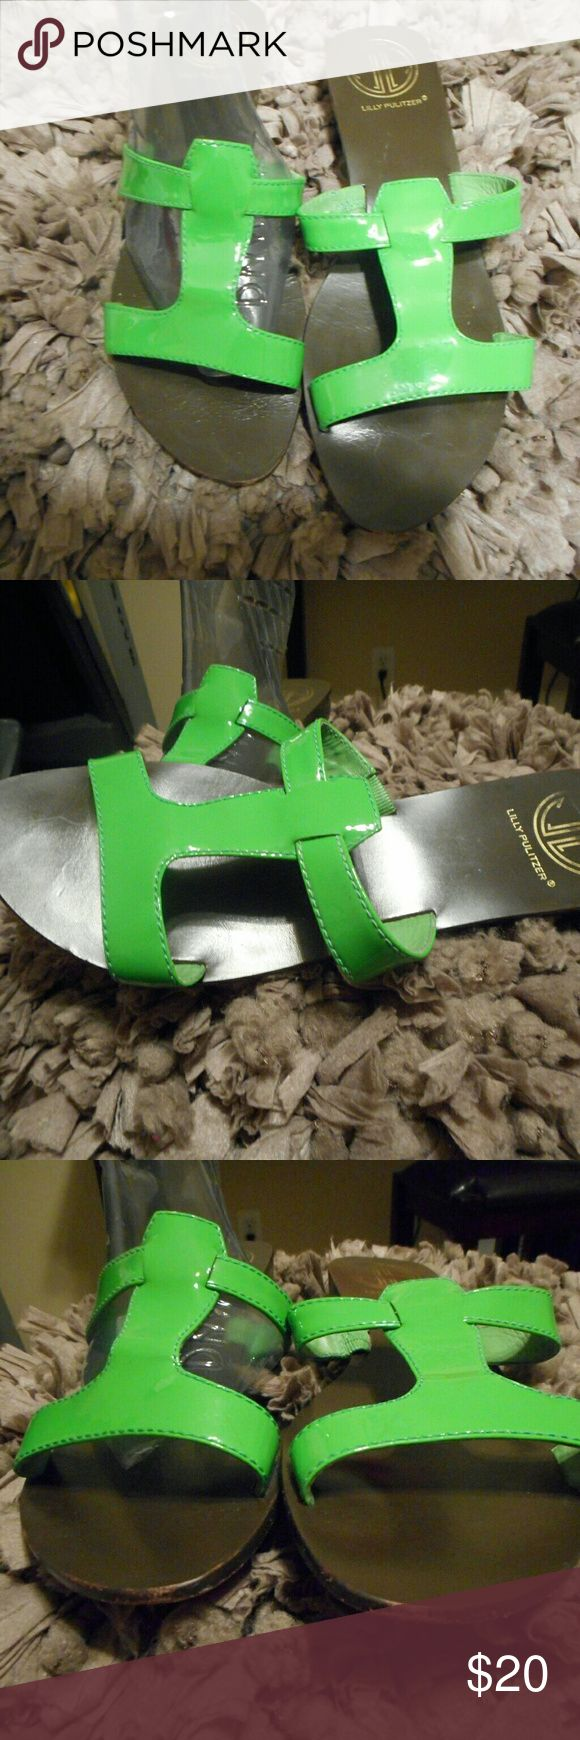 FUC! Vintage Lilly Pulitzer Green Sandals Sz. 6/7 FUC! Vintage Lilly Pulitzer Green Sandals Sz. 6/7 Very used but these sandals still have tons of life in them.  These did not have a size but we're measured to be a 6/7.  Leather Lilly Pulitzer Shoes Sandals